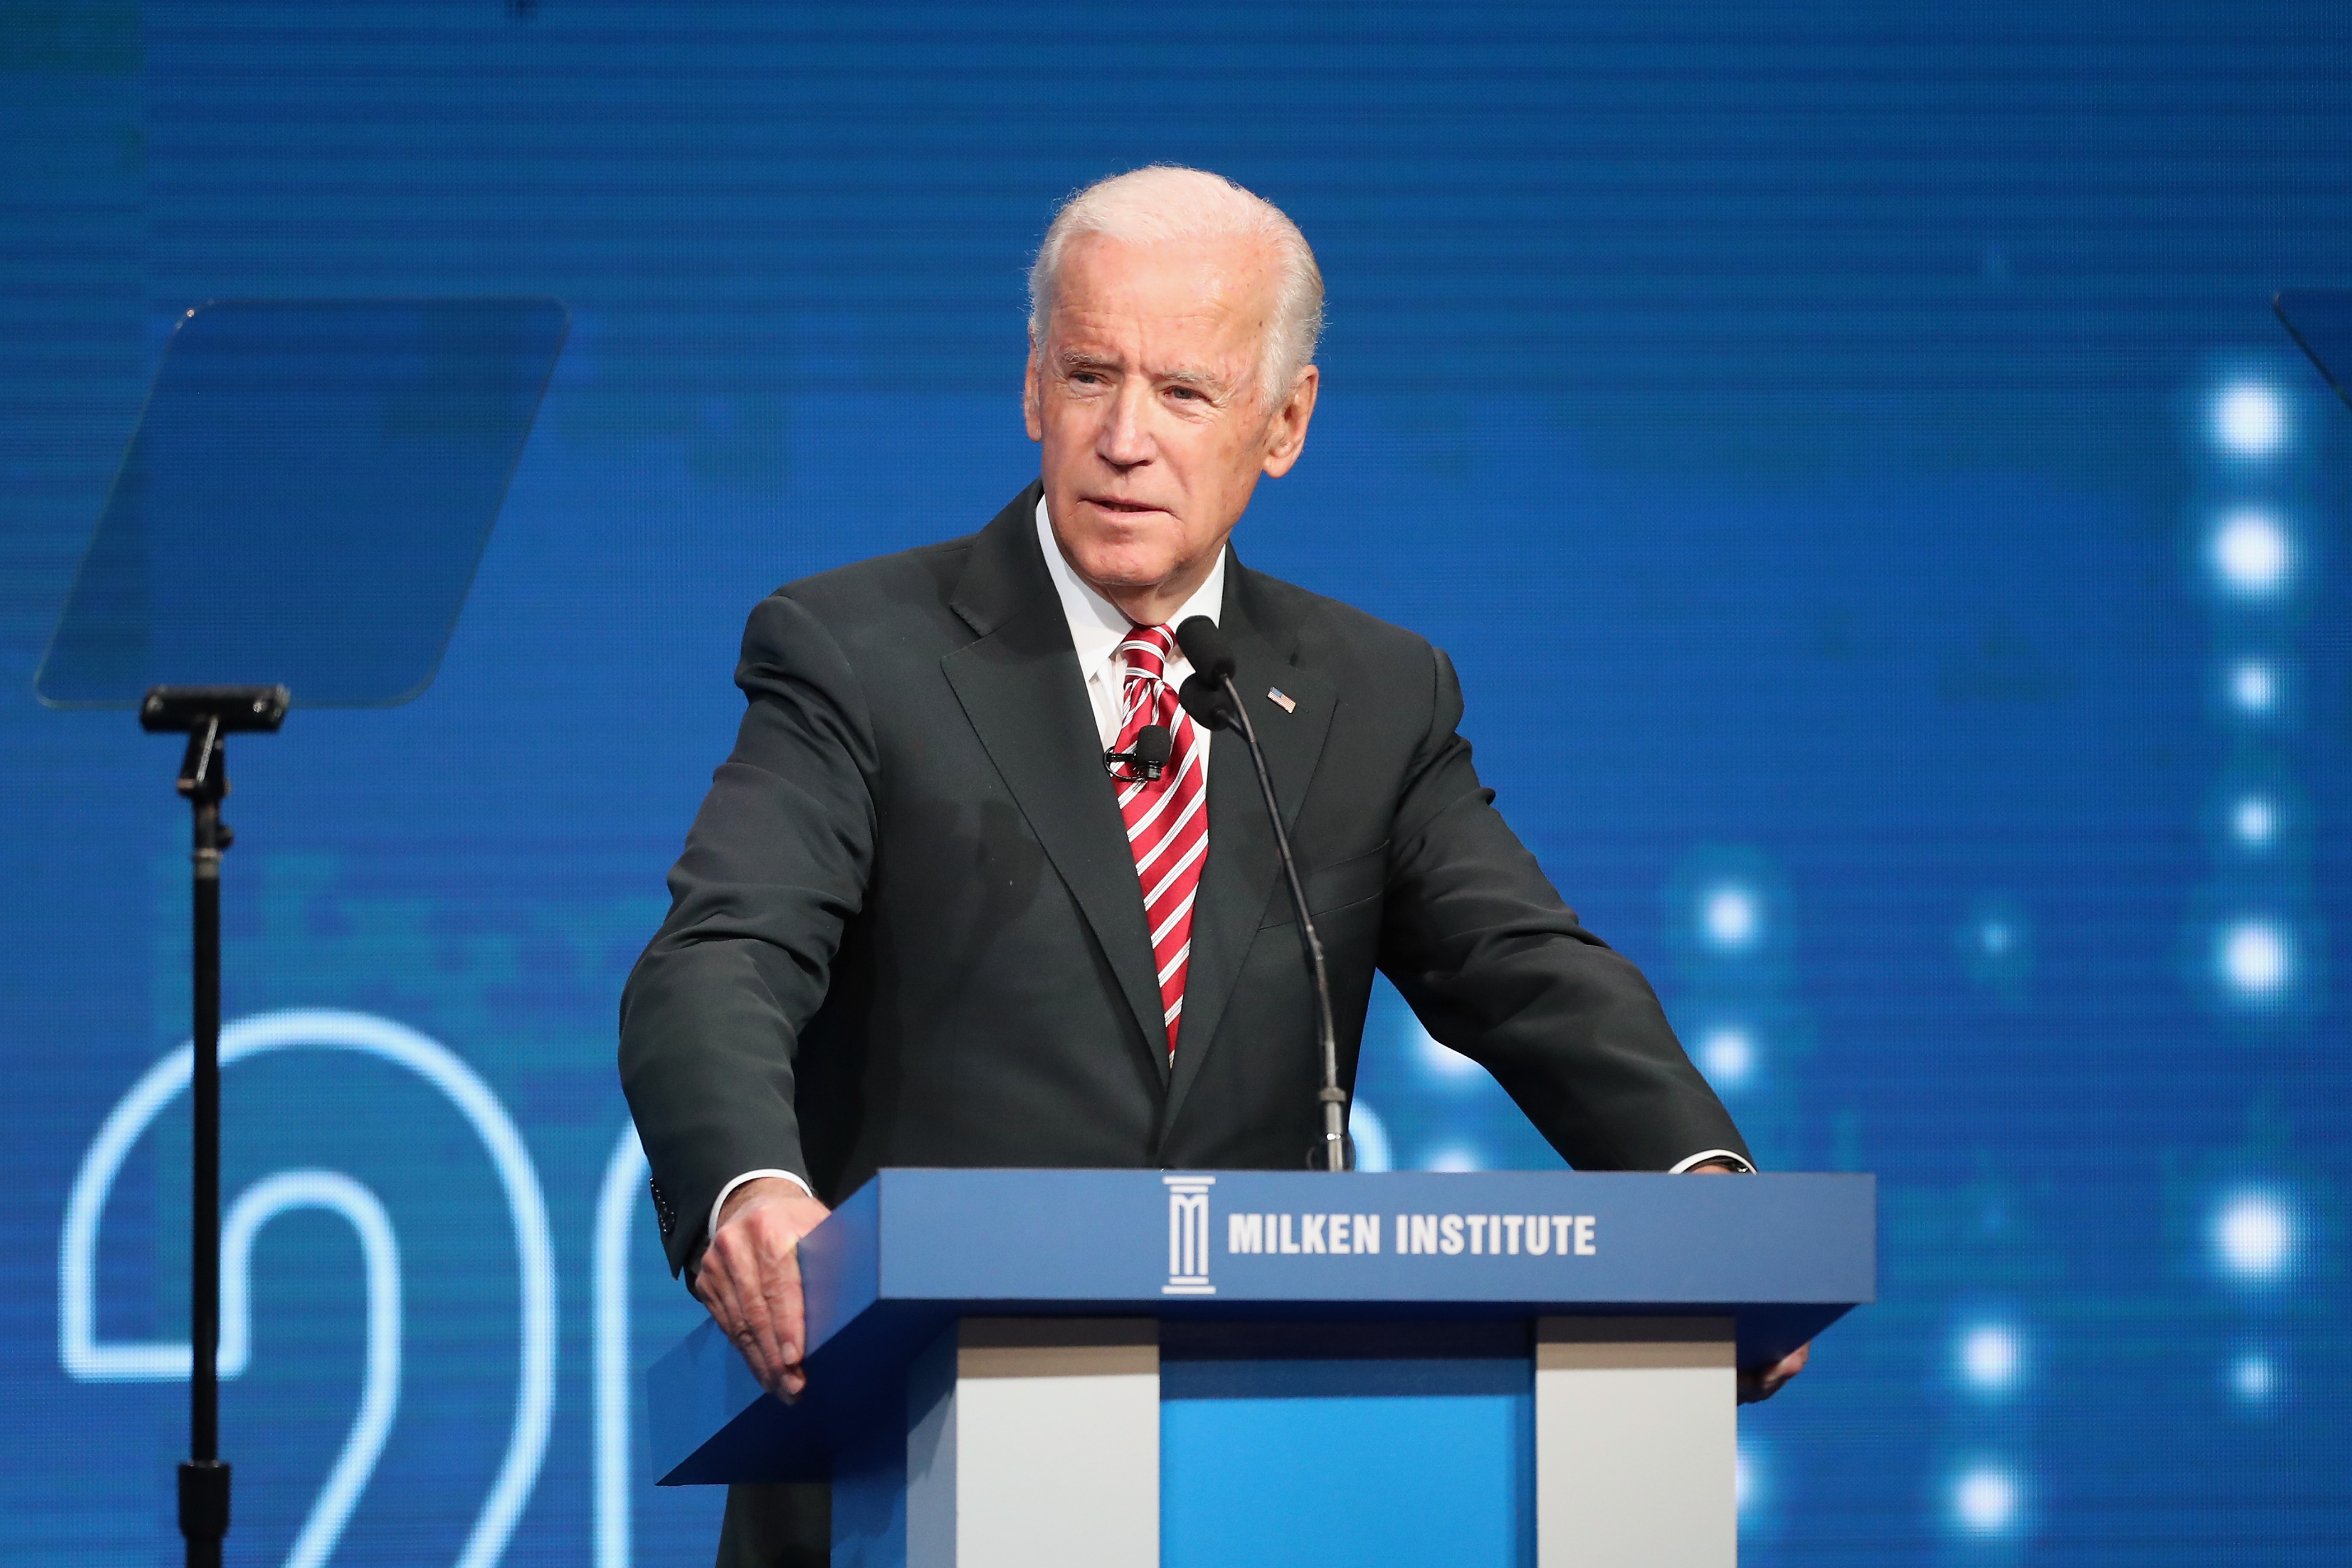 Former U.S. Vice President Joe Biden speak during the Milken Institute Global Conference 201 on May 3, 2017 in Beverly Hills, California.